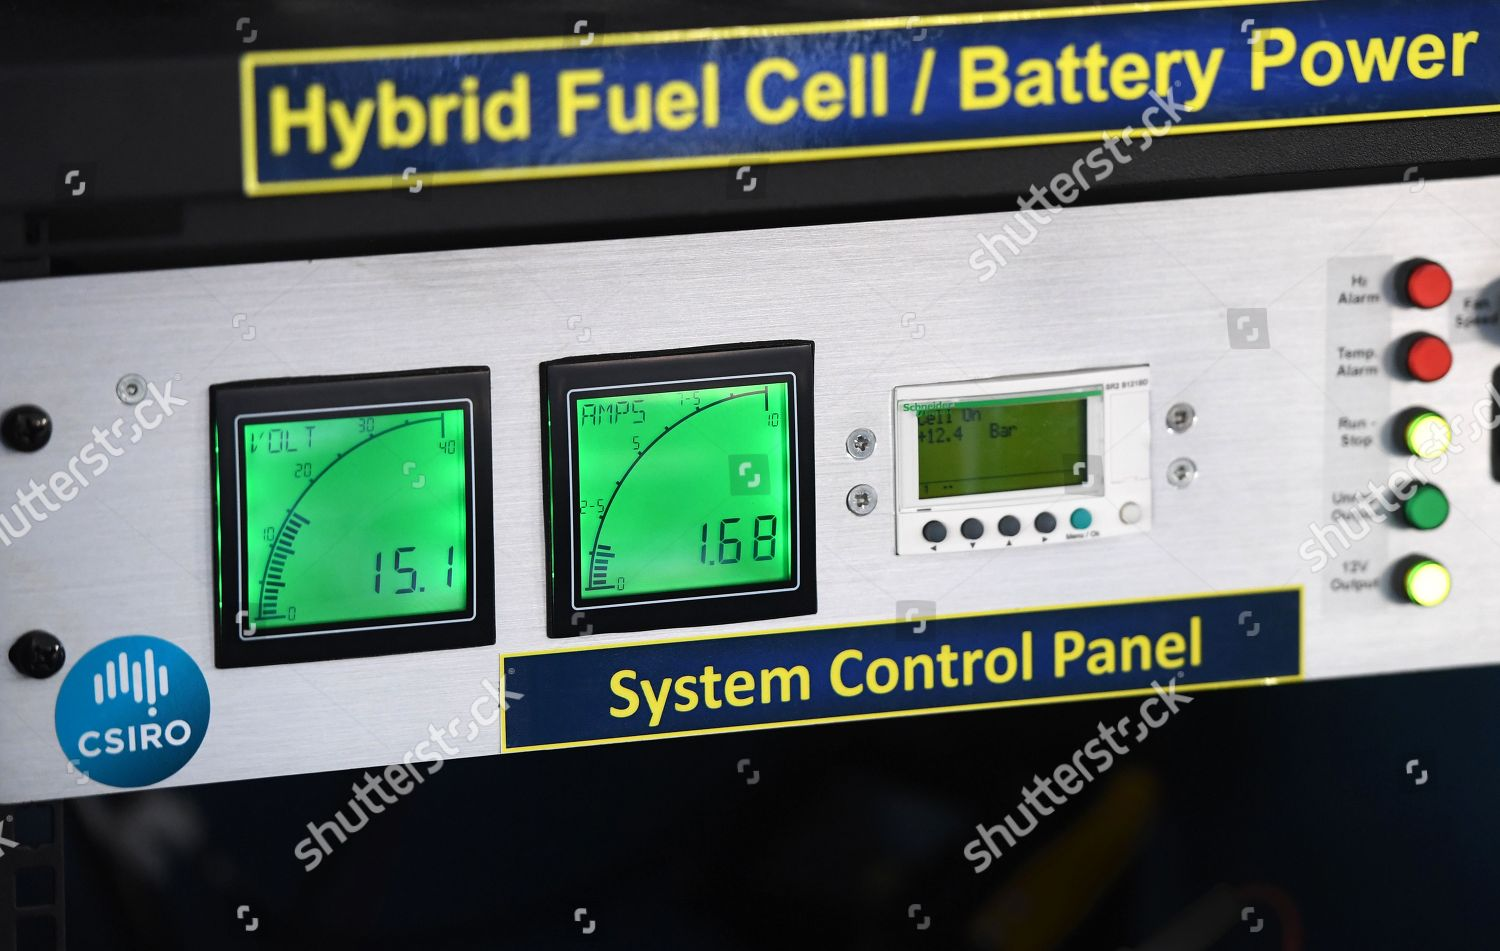 testing energy management strategies for hybrid fuel cell powertrains Mr morey has published articles have covered computer simulation in support of engine development, future fuels, fuel cell vehicles, manufacturing, automotive engineering and product development he is also the author of two books, automotive 2030 north america and future automotive fuels and energy, both published by sae international.